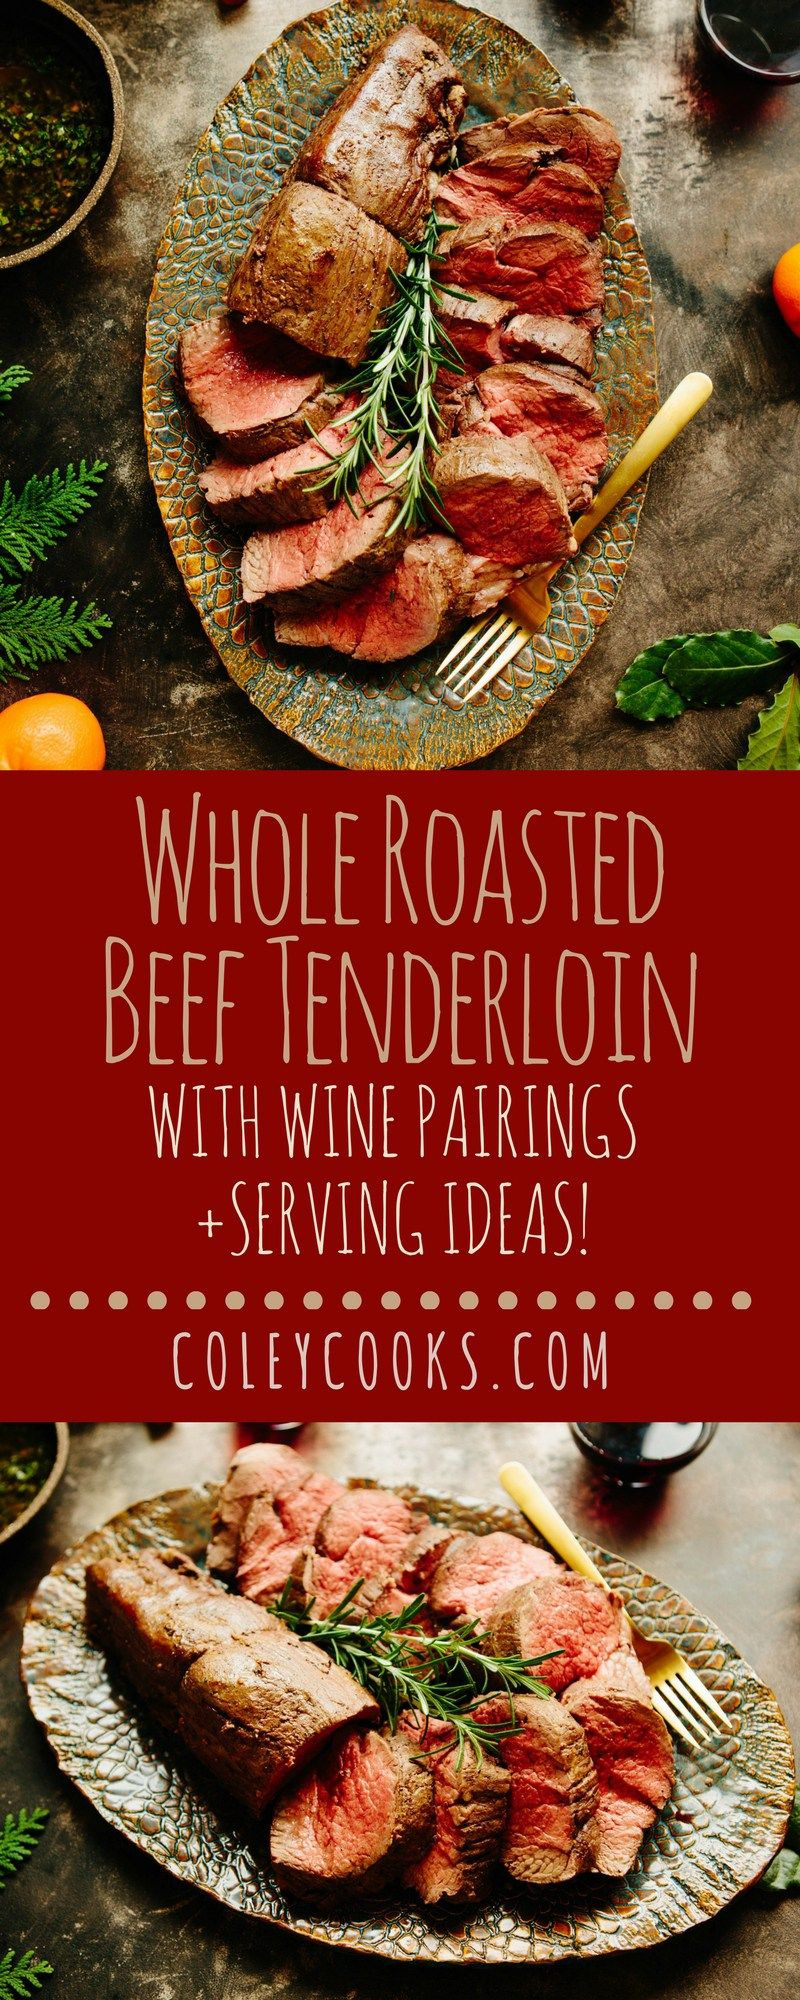 Whole Roasted Beef Tenderloin Recipe With Images Whole Beef Tenderloin Beef Tenderloin Beef